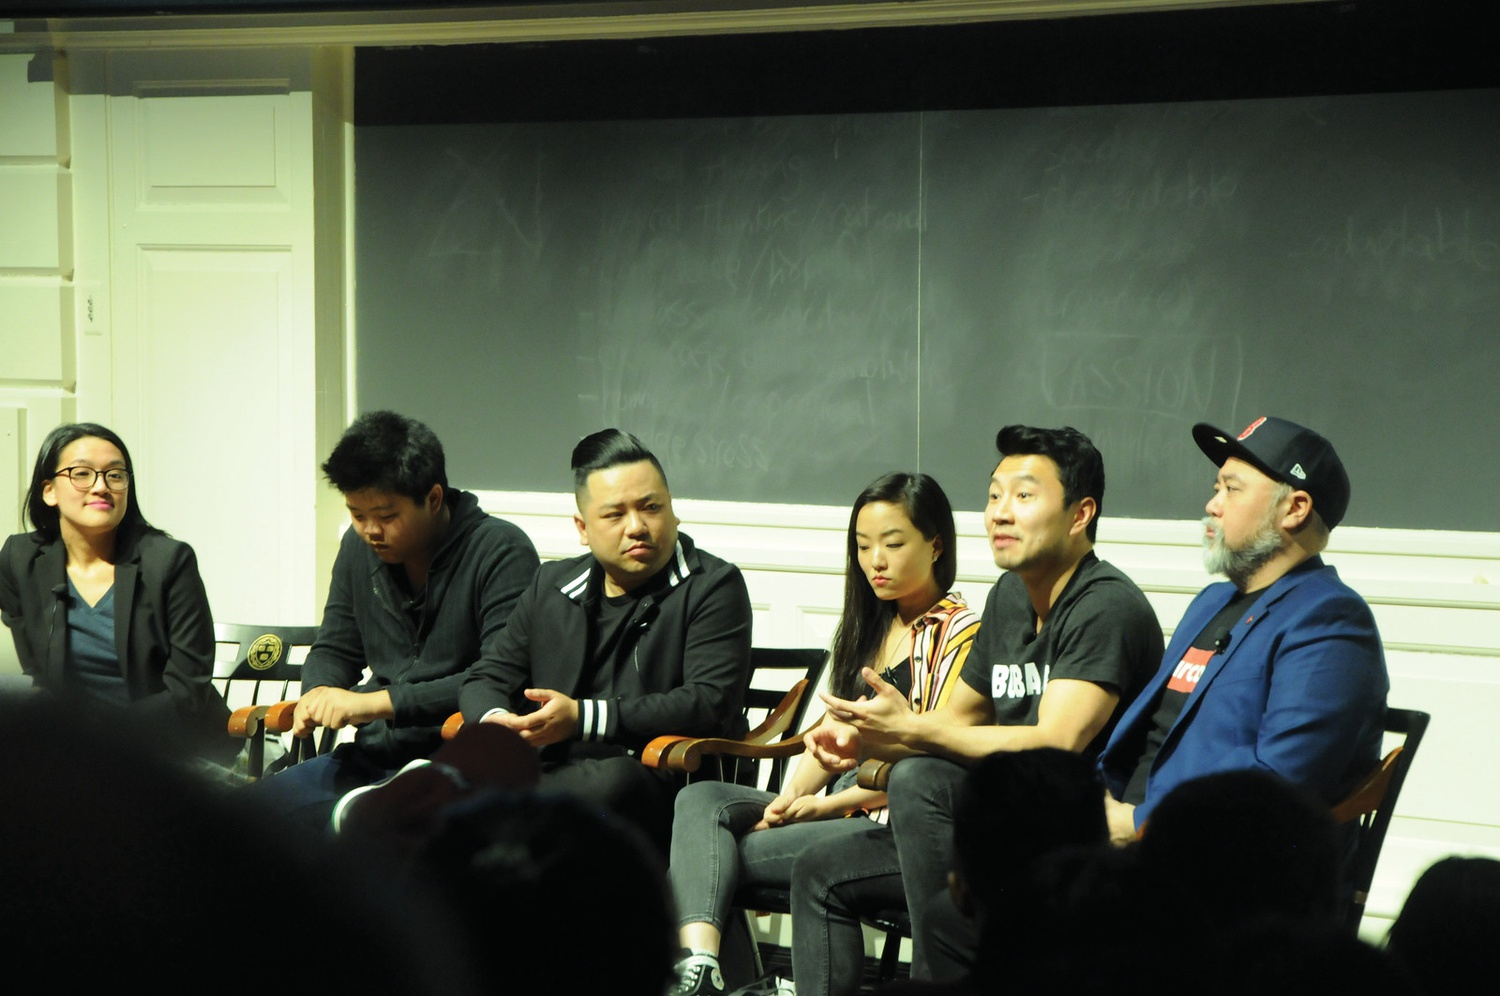 Paul Sun-Hyung Lee, Andrew Phung, Andrea Bang, Simu Liu, and Hudson Yang spoke about celebrating Asian identity at the Harvard Graduate School of Education on March 25.